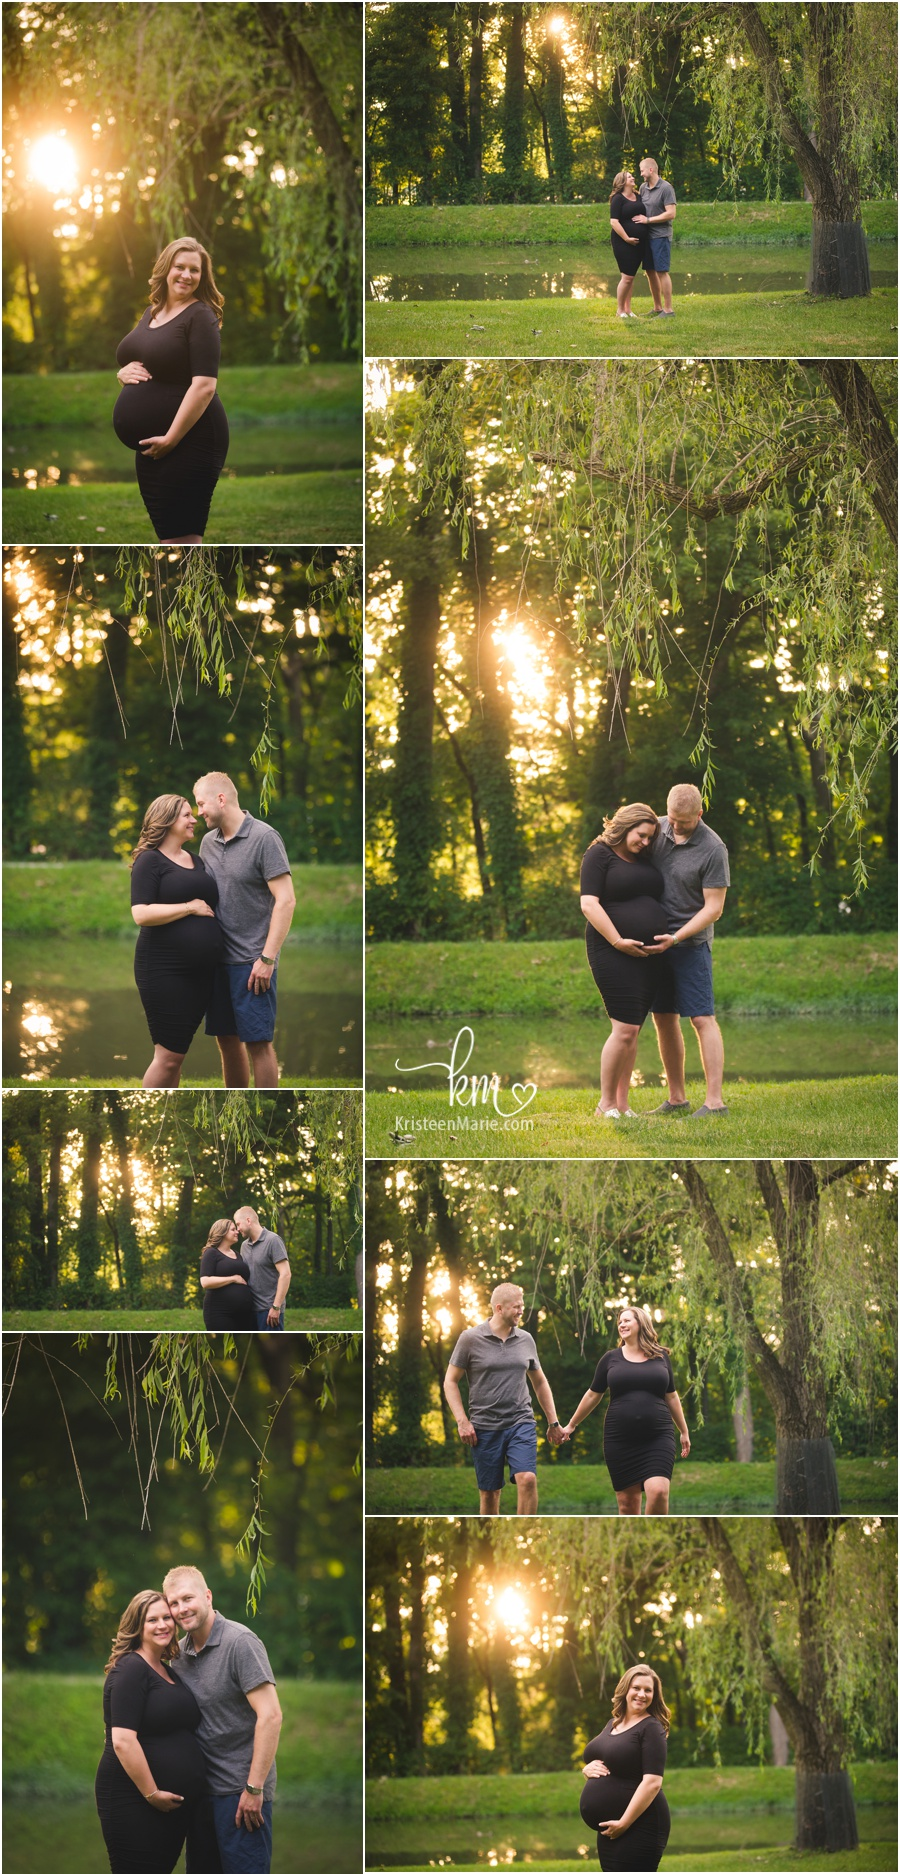 Indianapolis maternity photography at sunset - beautiful!